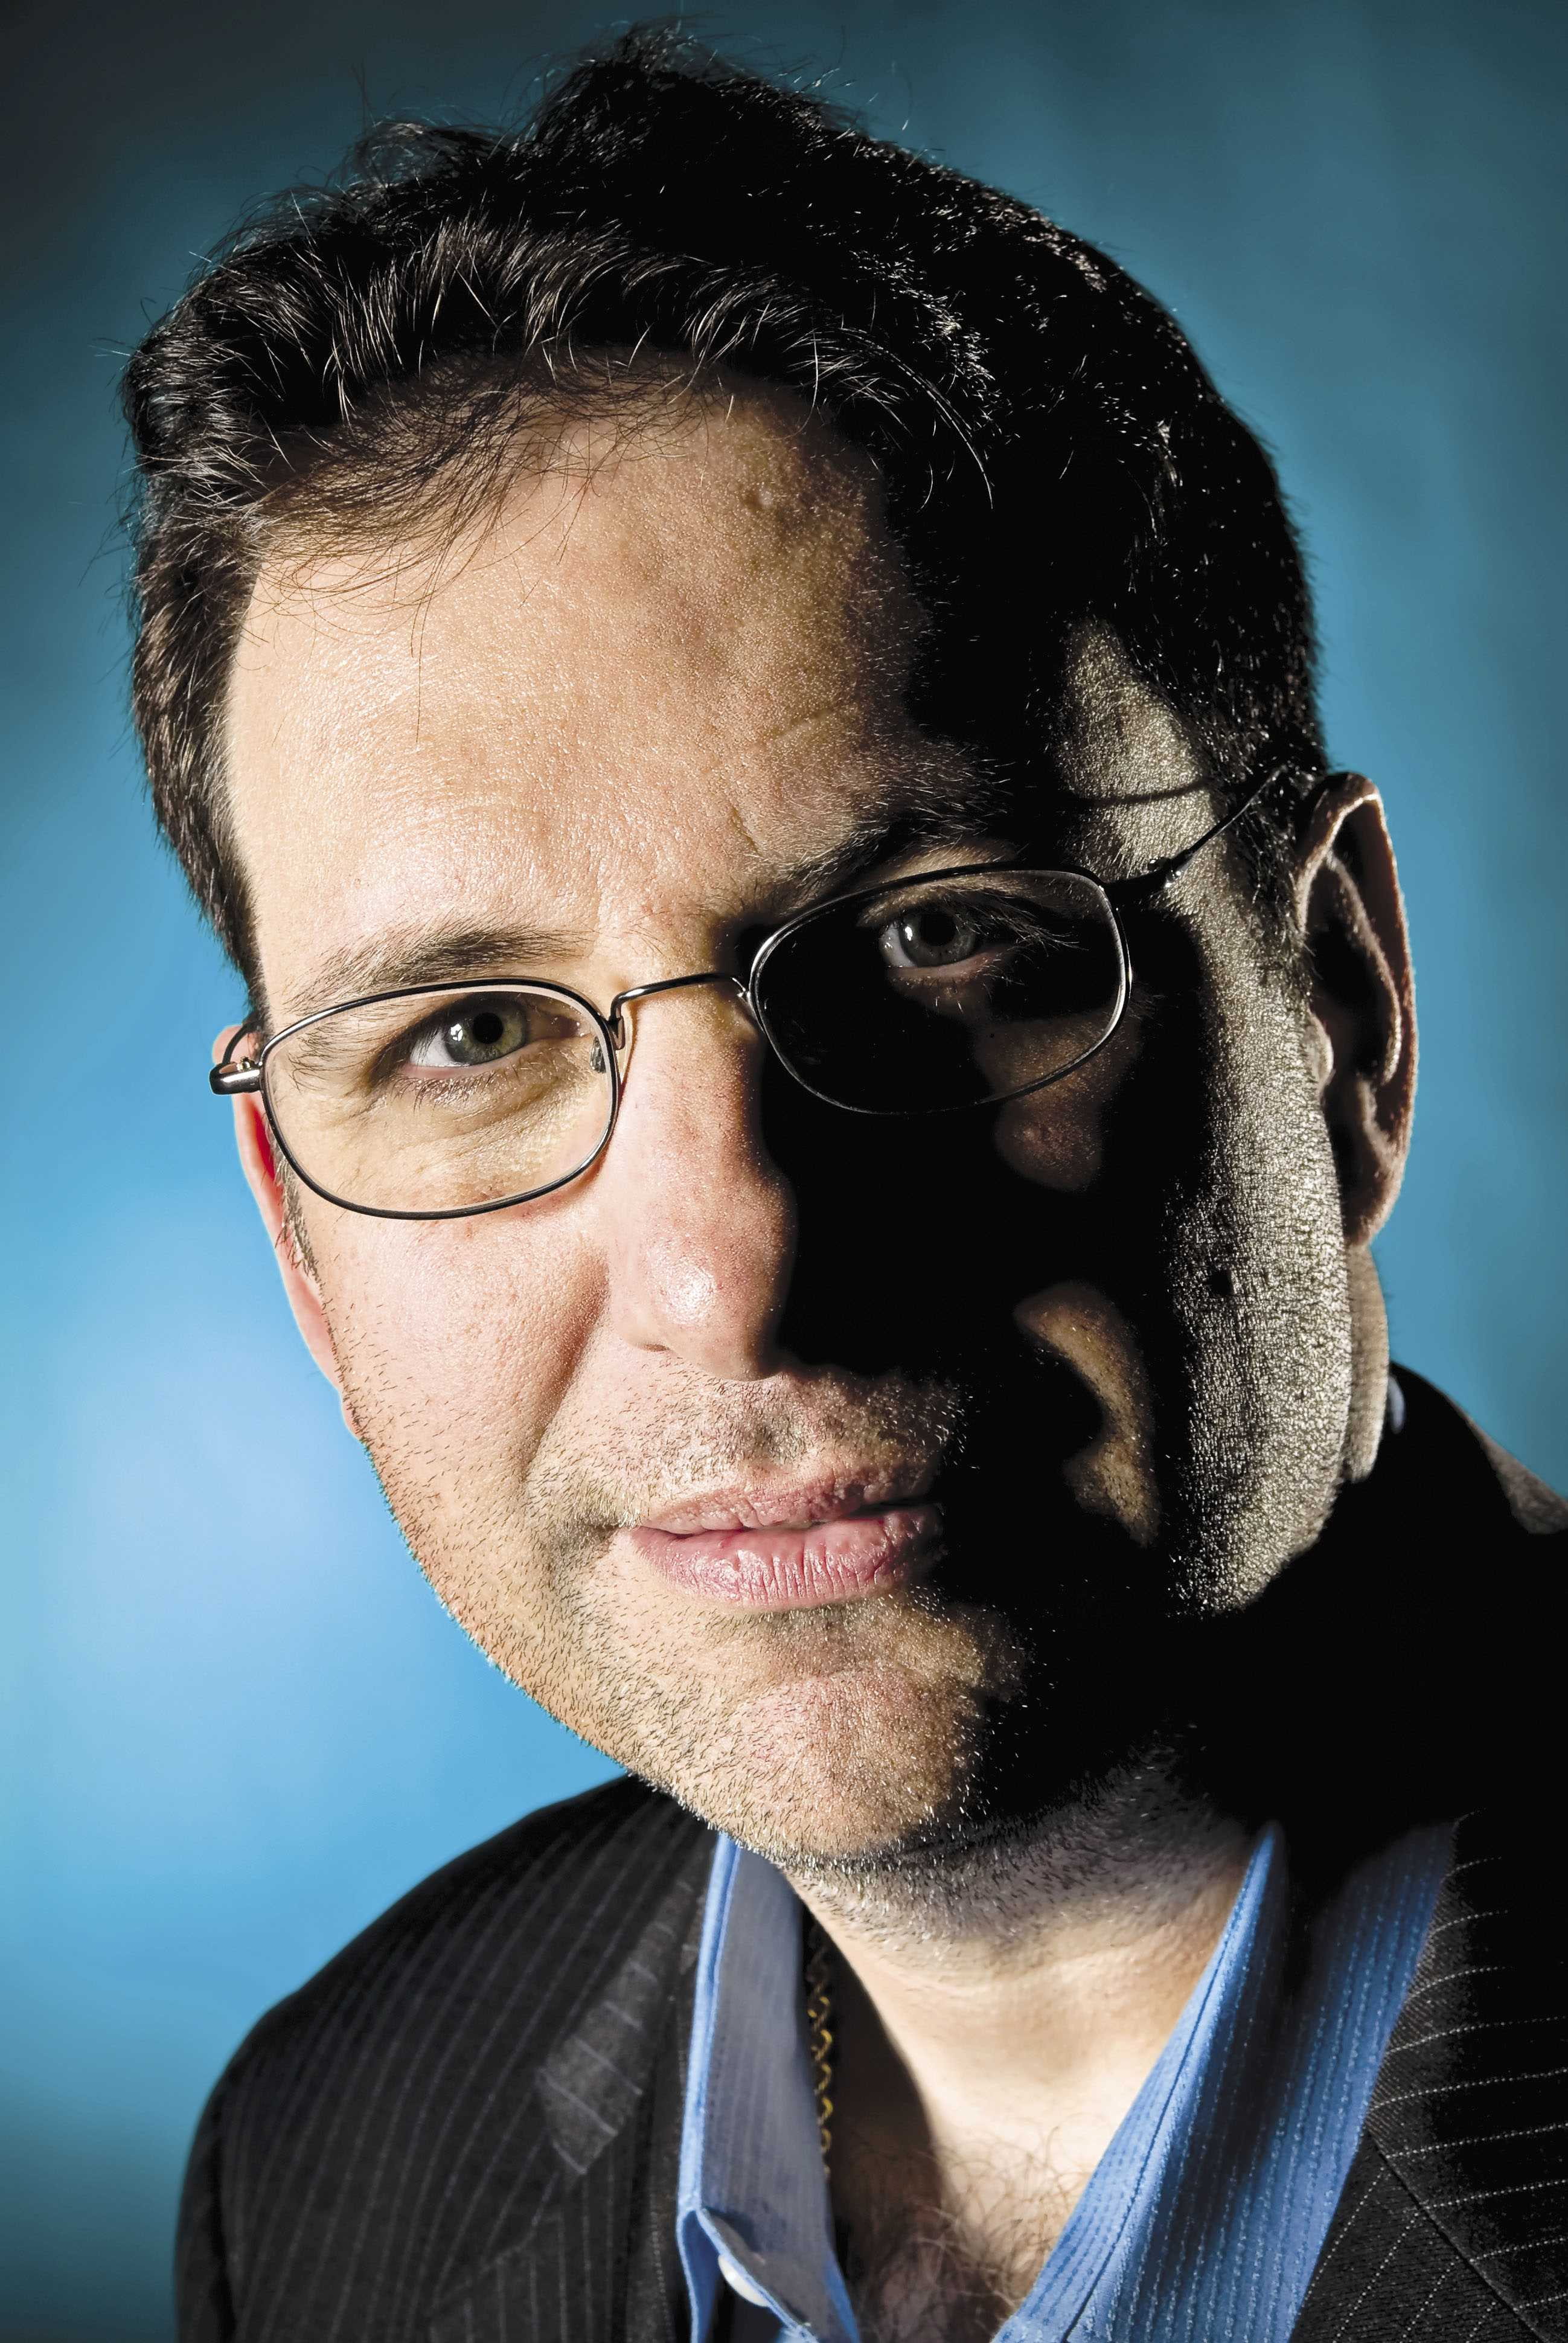 Kevin Mitnick, Cyber Security Speaker